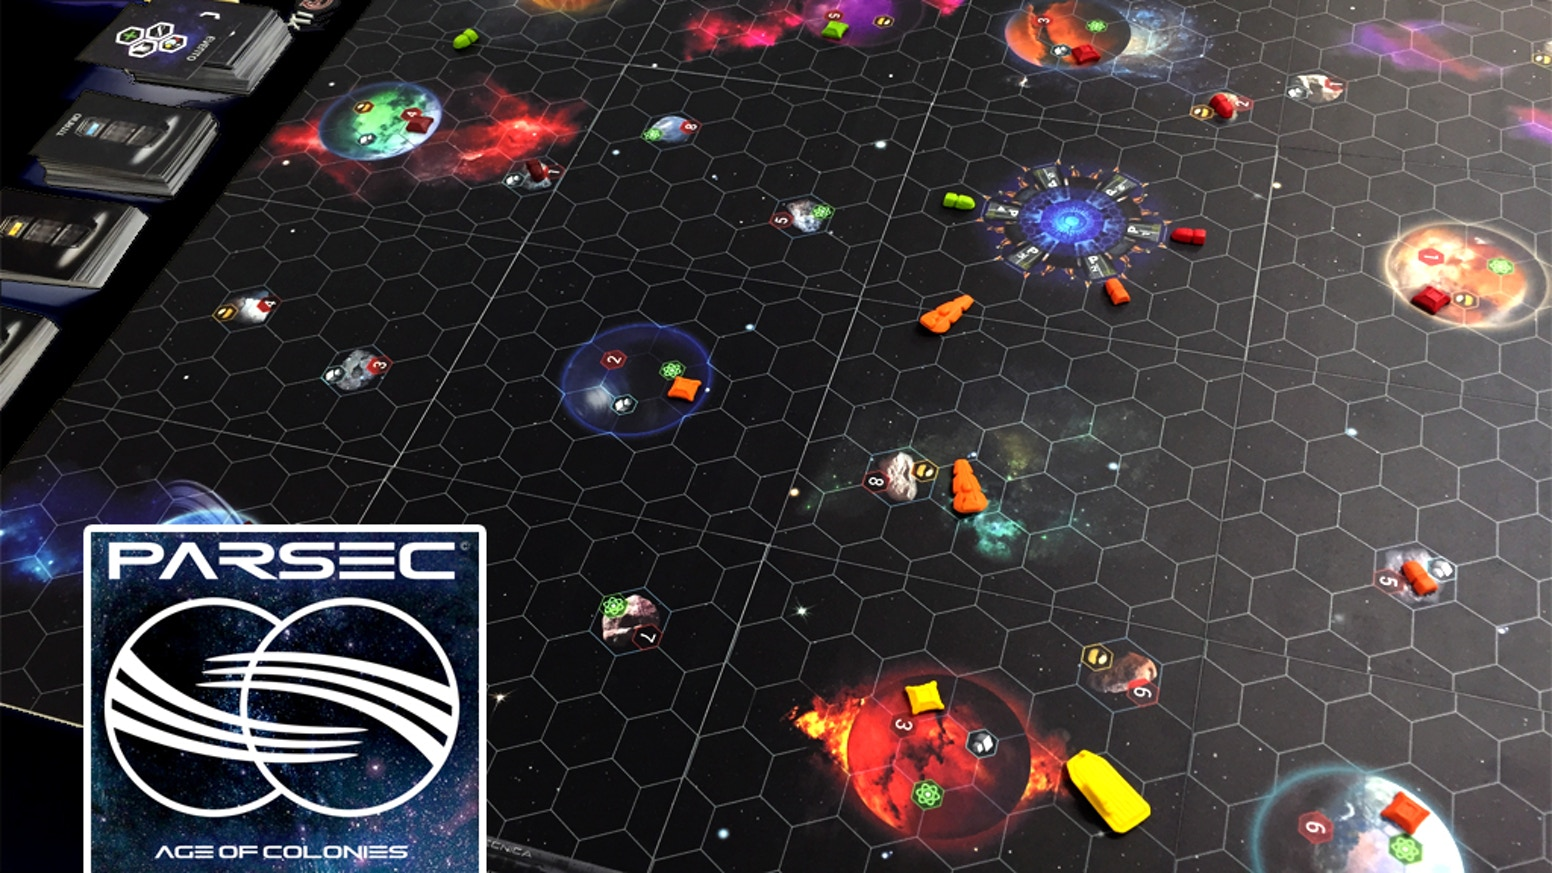 Colonize and control planets and asteroids, gain resources, expand your domain and build a powerful fleet to rule the galaxy!